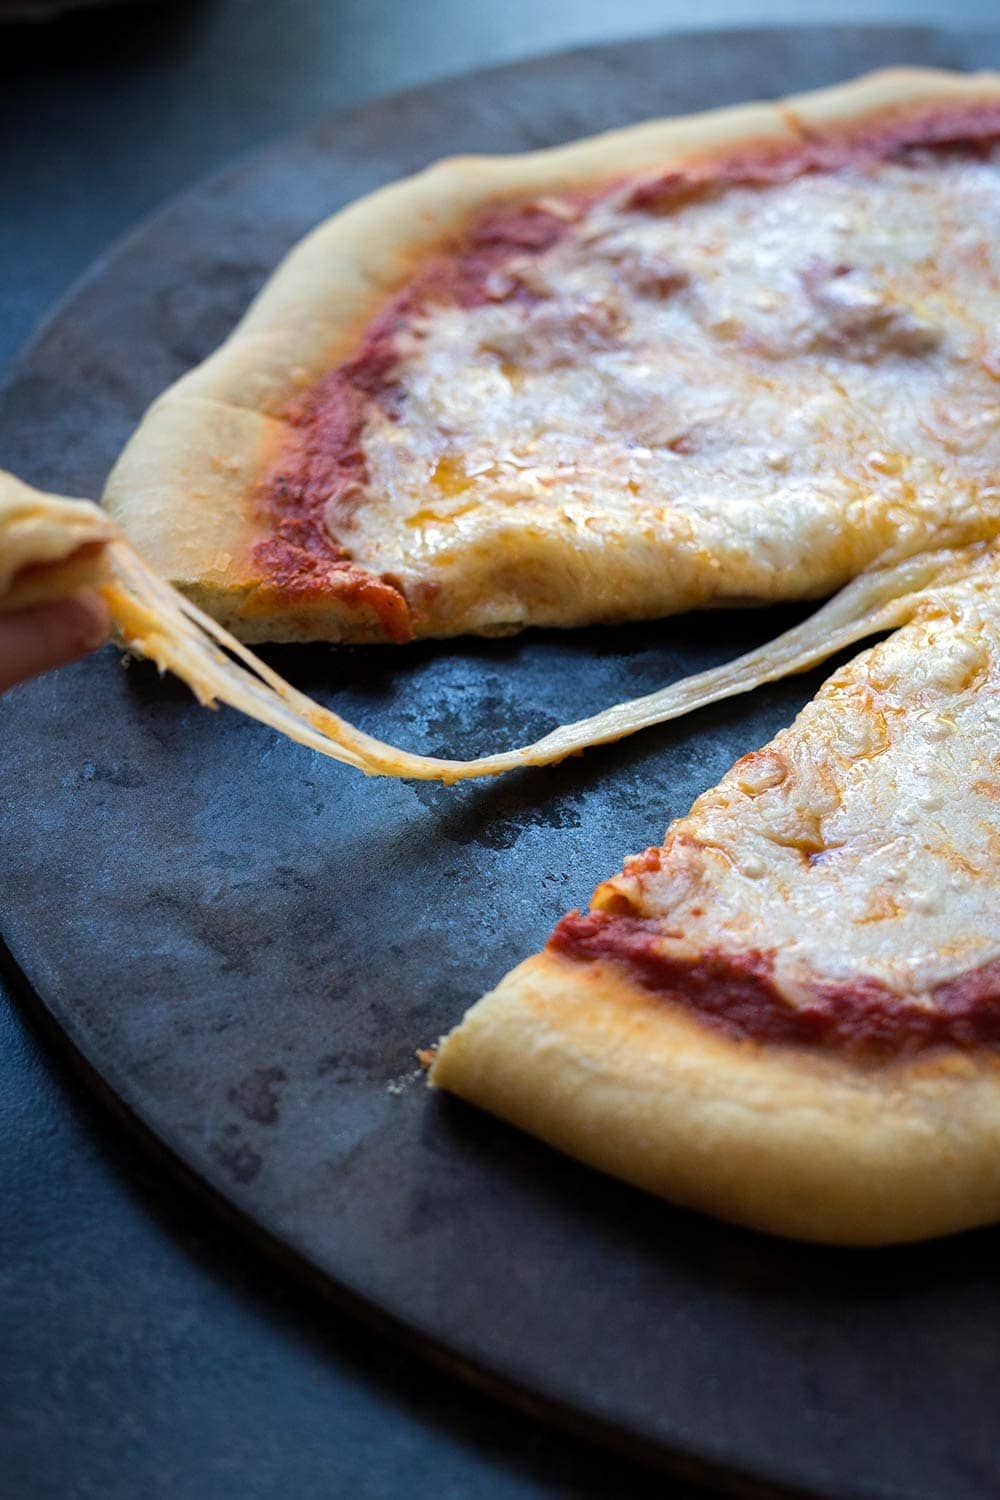 A photo of homemade frozen pizza with melted cheese oozing off a fresh slice.